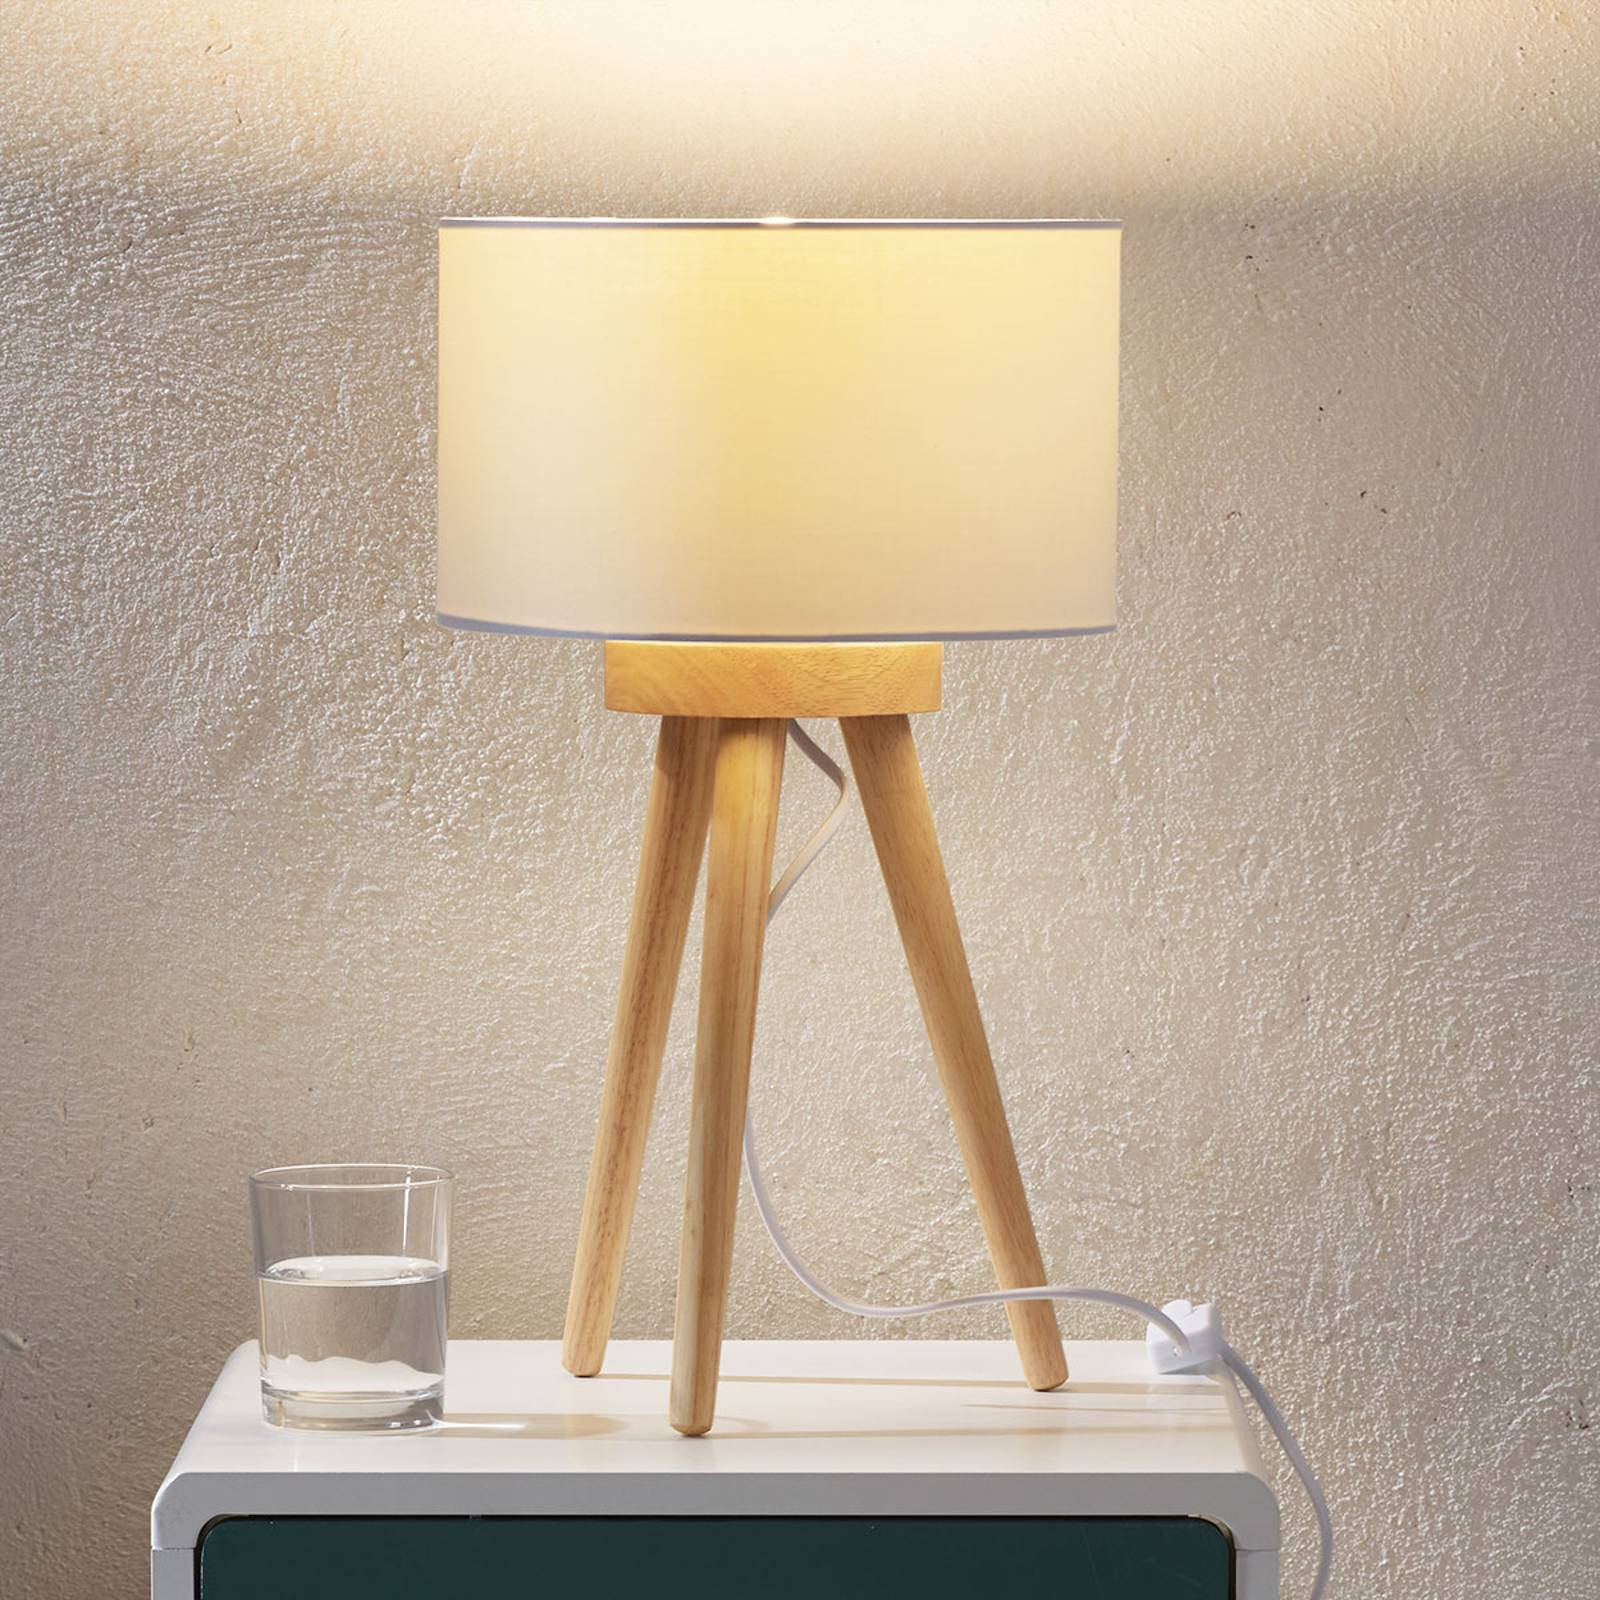 Wooden table lamp Charlia with white fabric shade from LAMPENWELT.COM